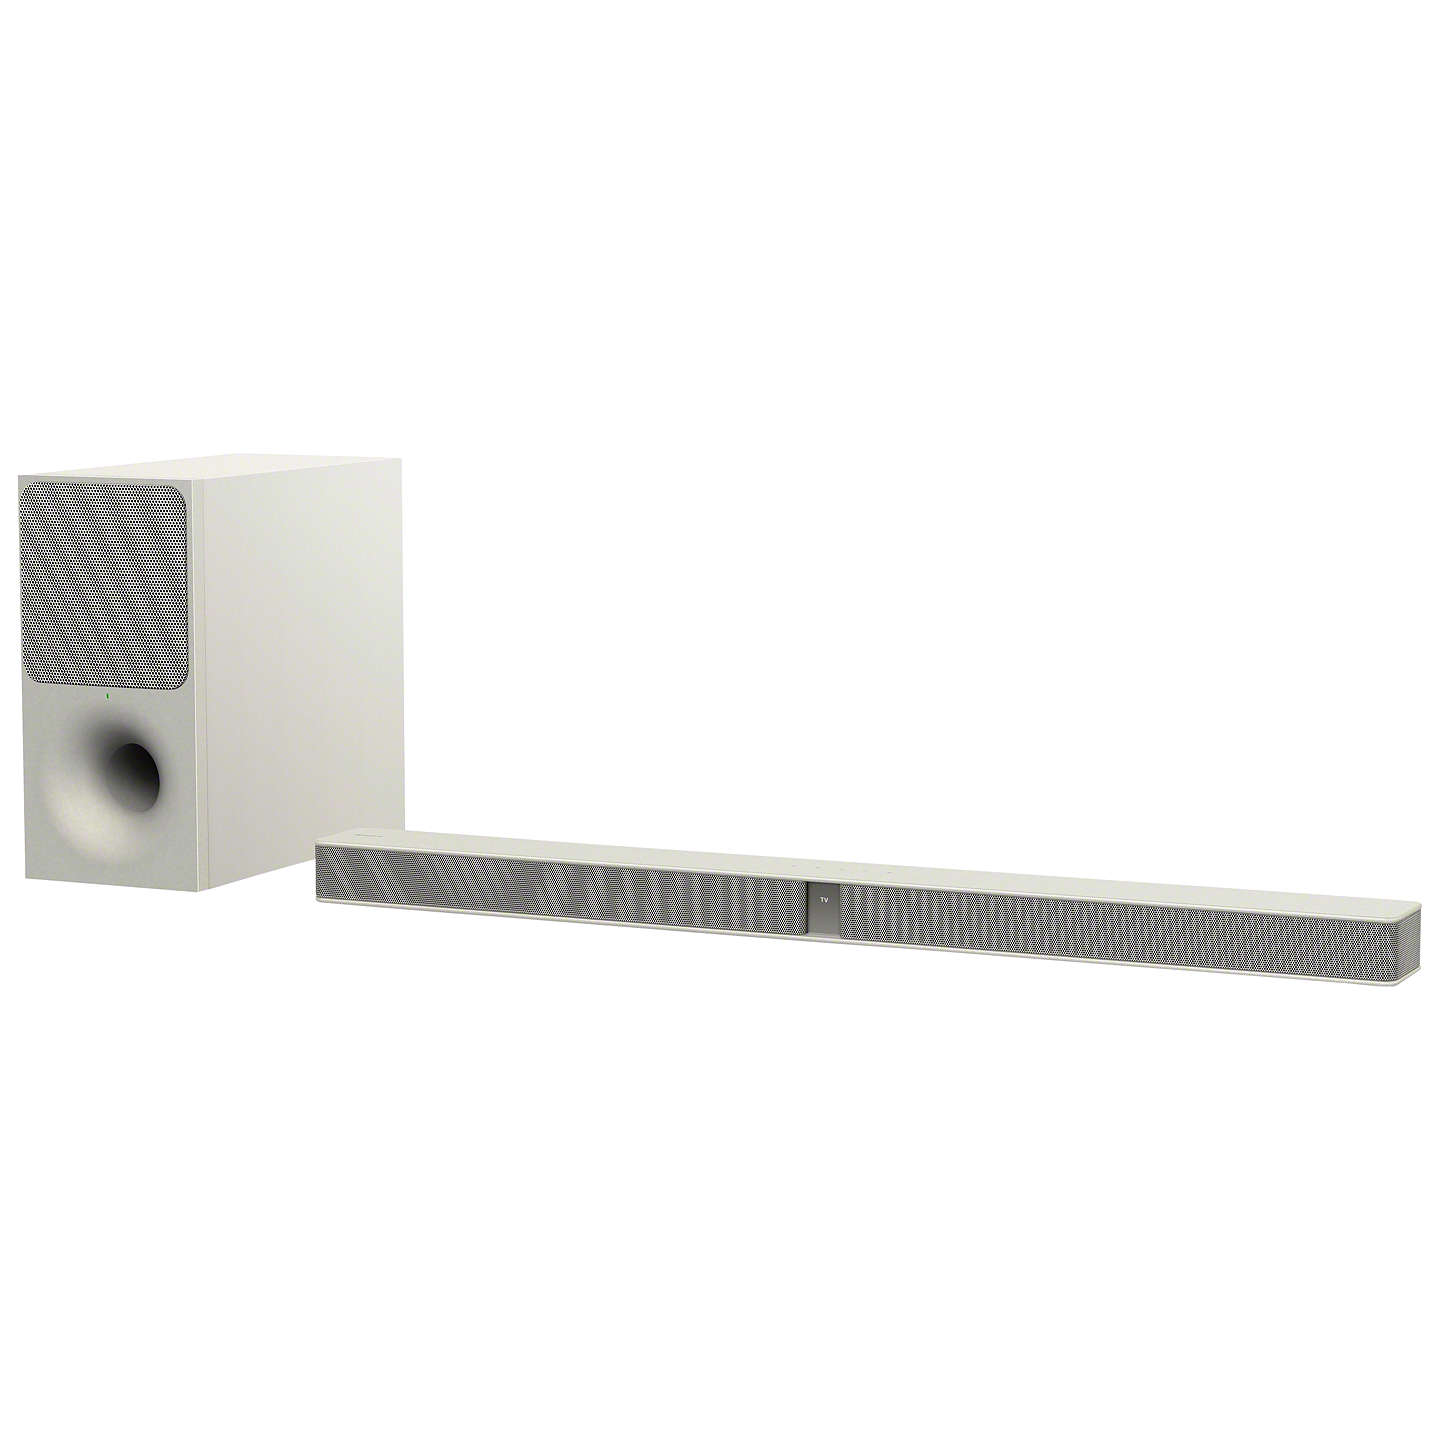 BuySony HT-CT291 Bluetooth Sound Bar with Wireless Subwoofer, Creme White Online at johnlewis.com